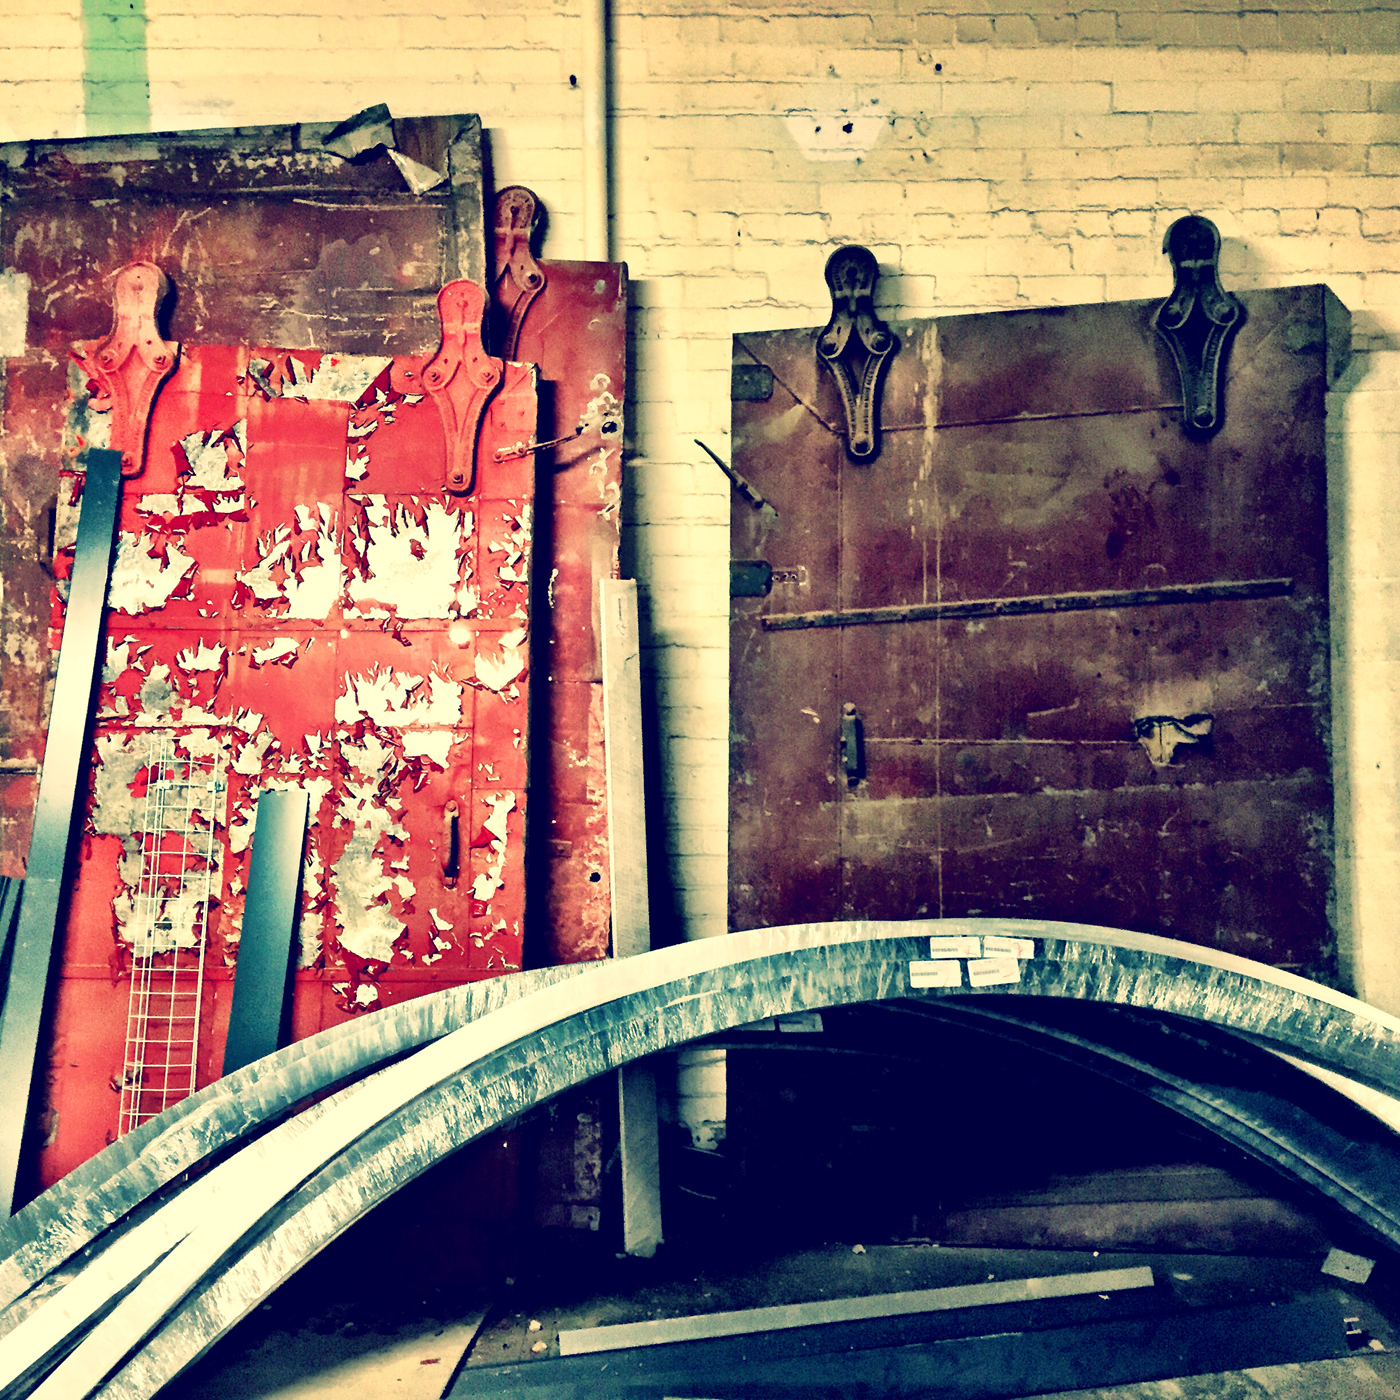 They had these old doors stacked up against the wall. I wonder what they will do with them?